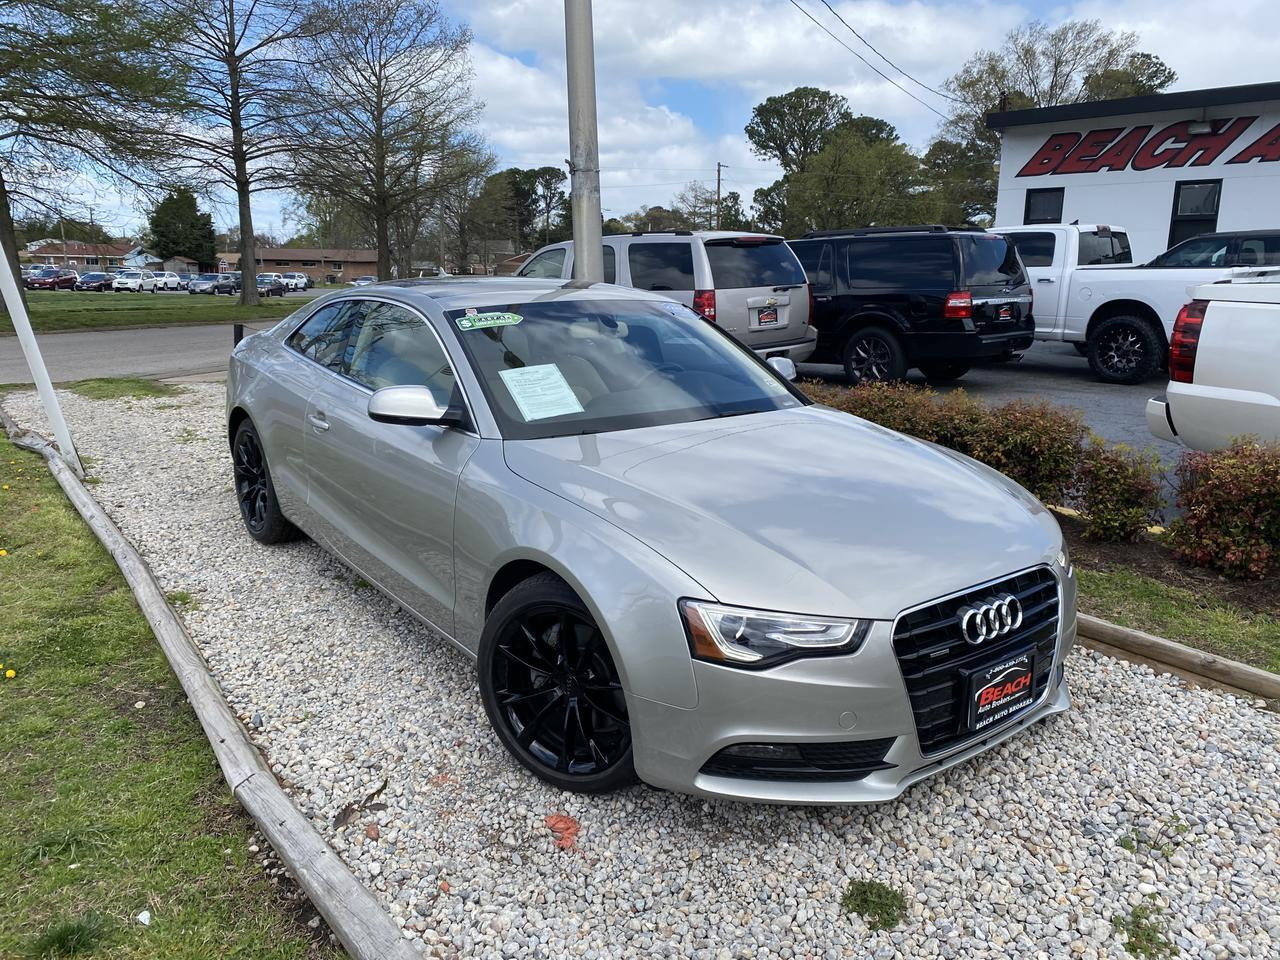 2014 AUDI A5 QUATTRO PREMIUM +, WARRANTY, LEATHER, NAV, HEATED/COOLED SEATS, SUNROOF, BACKUP CAM, CLEAN CARFAX!